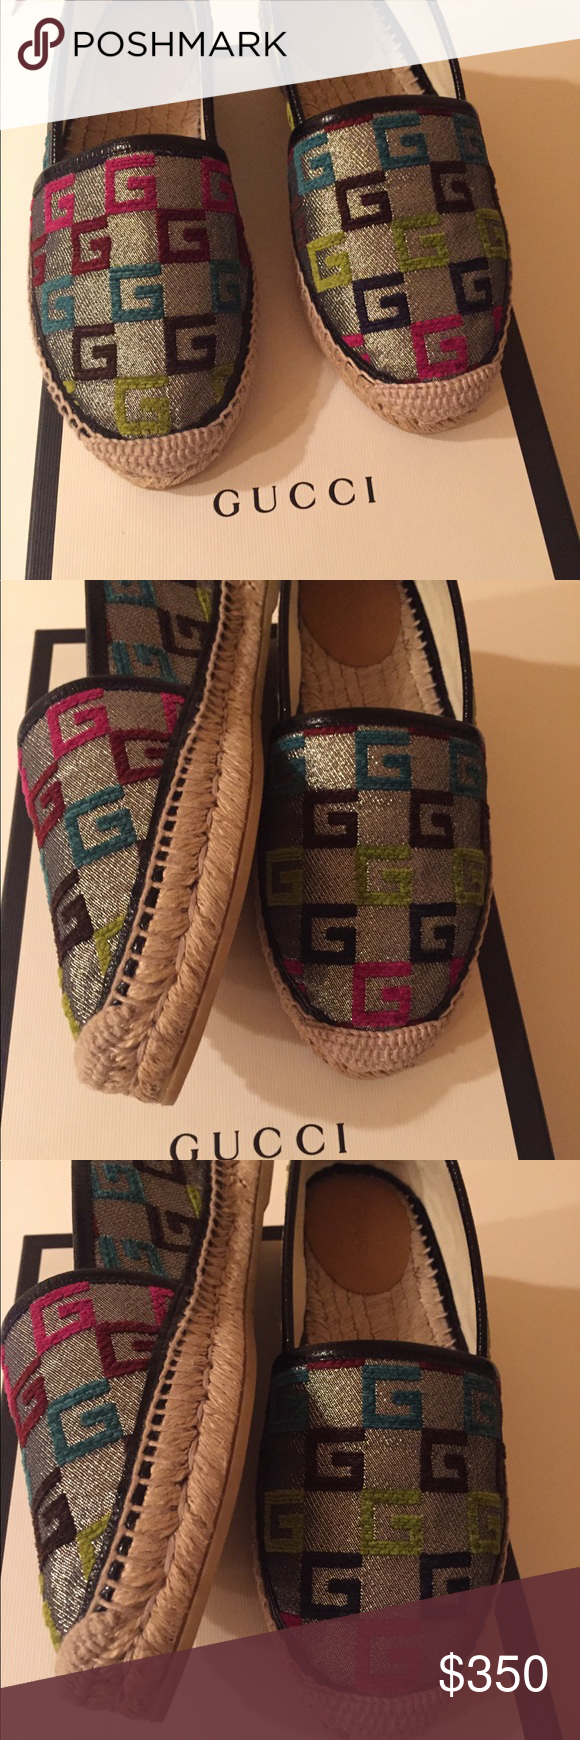 2d52aafb01c Spotted while shopping on Poshmark  Brand new Gucci shoes!  poshmark   fashion